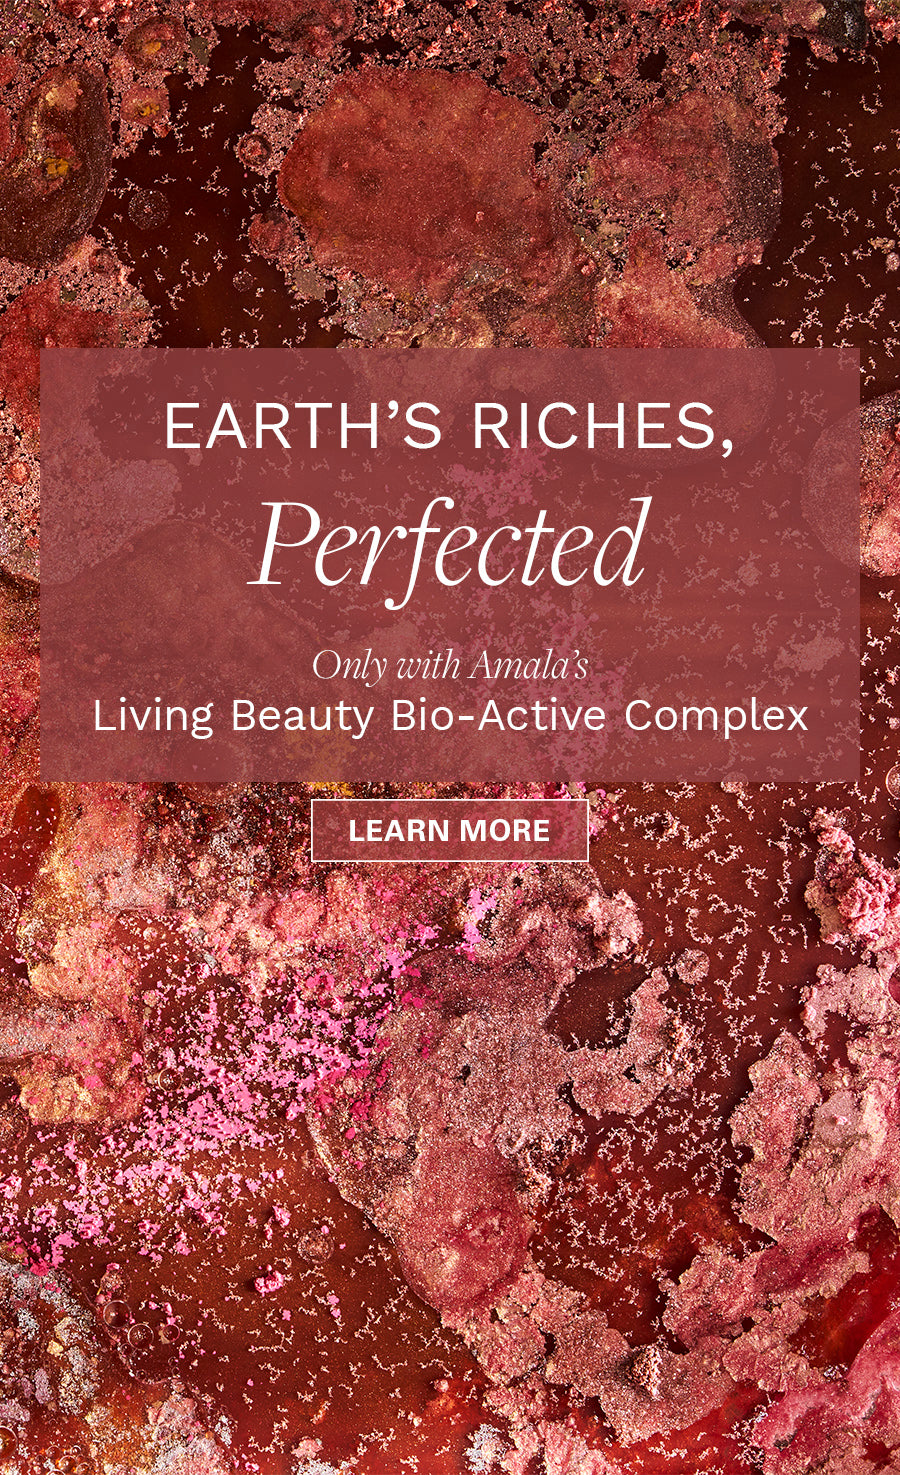 Earth's Riches, Perfected: Only with Amala's Living Beauty Bio-Active Complex